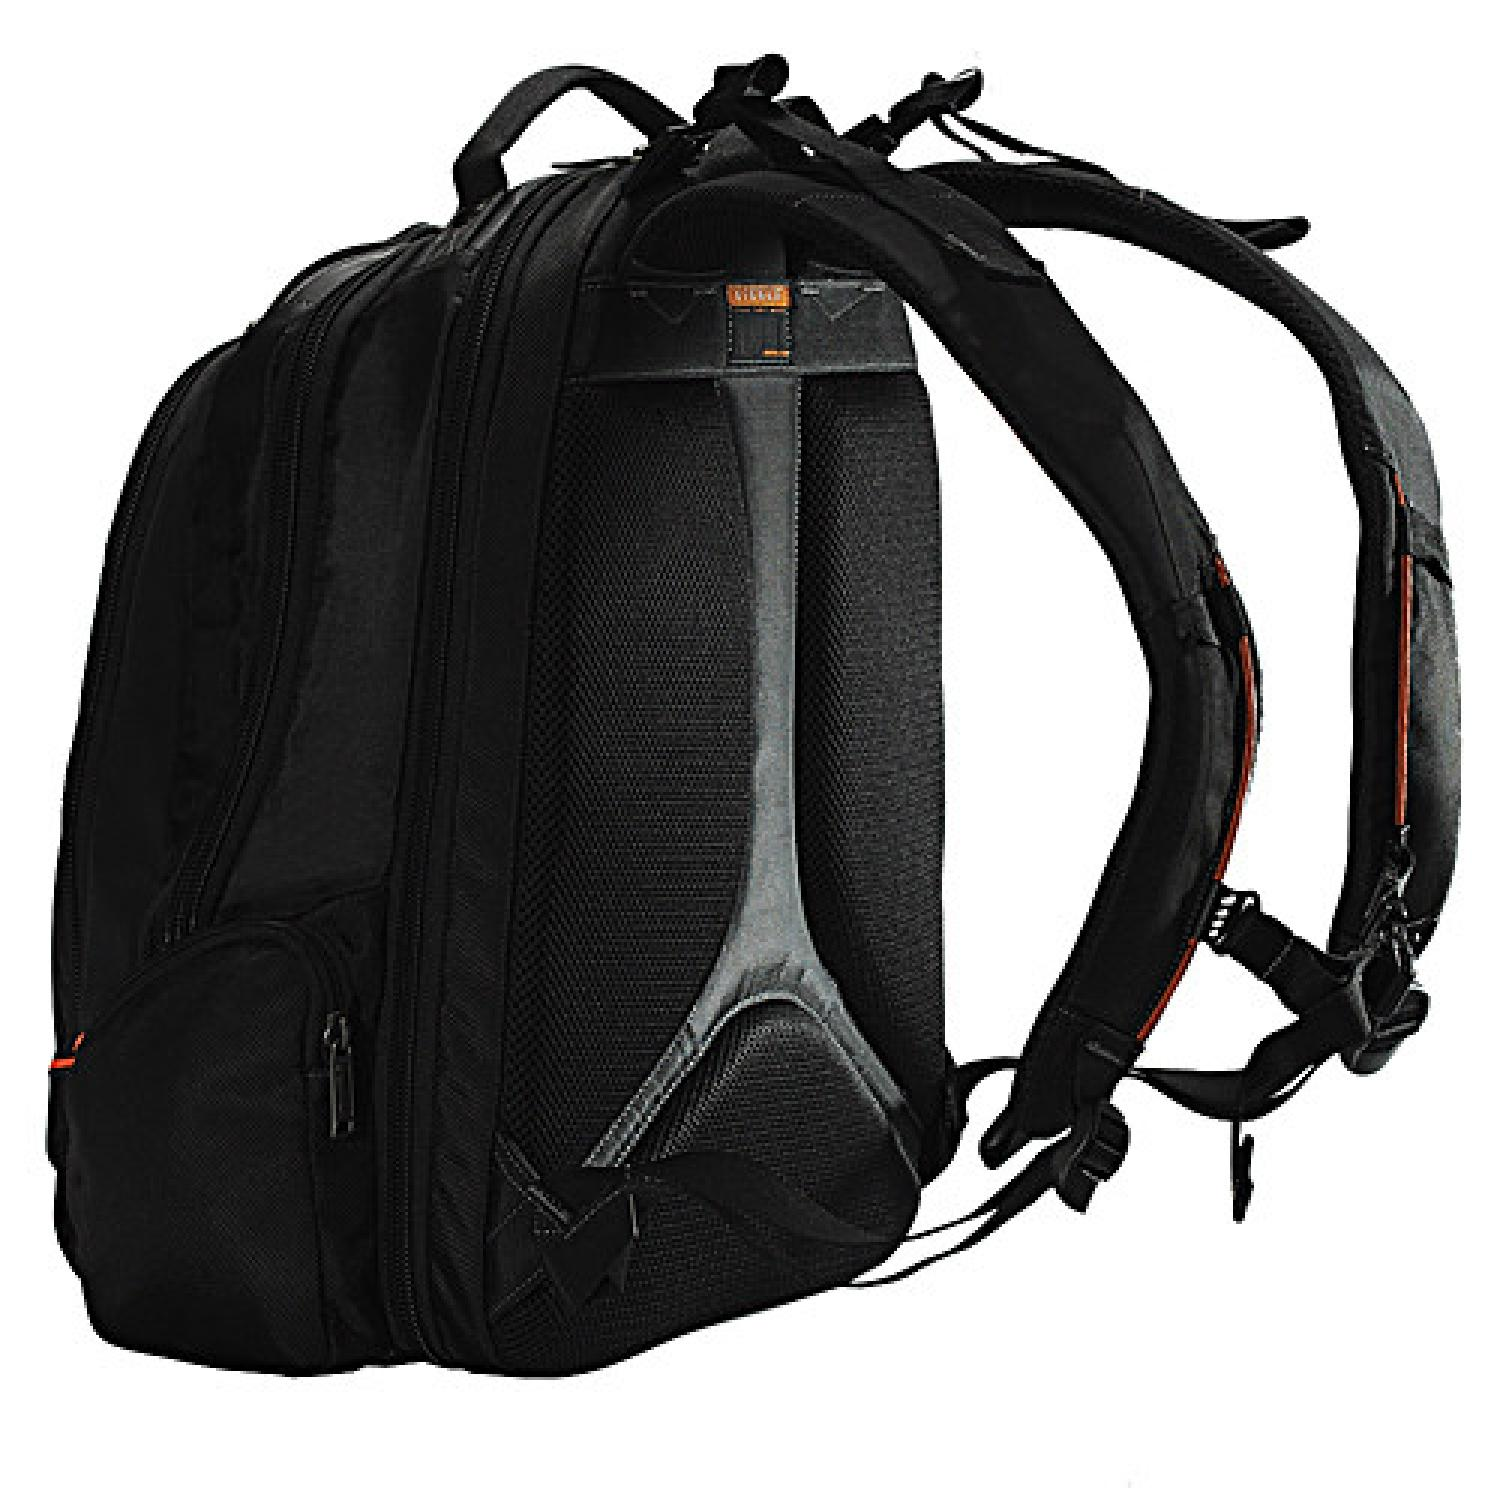 Everki EKP119 Flight Checkpoint Friendly Backpack fits up to 16-inch